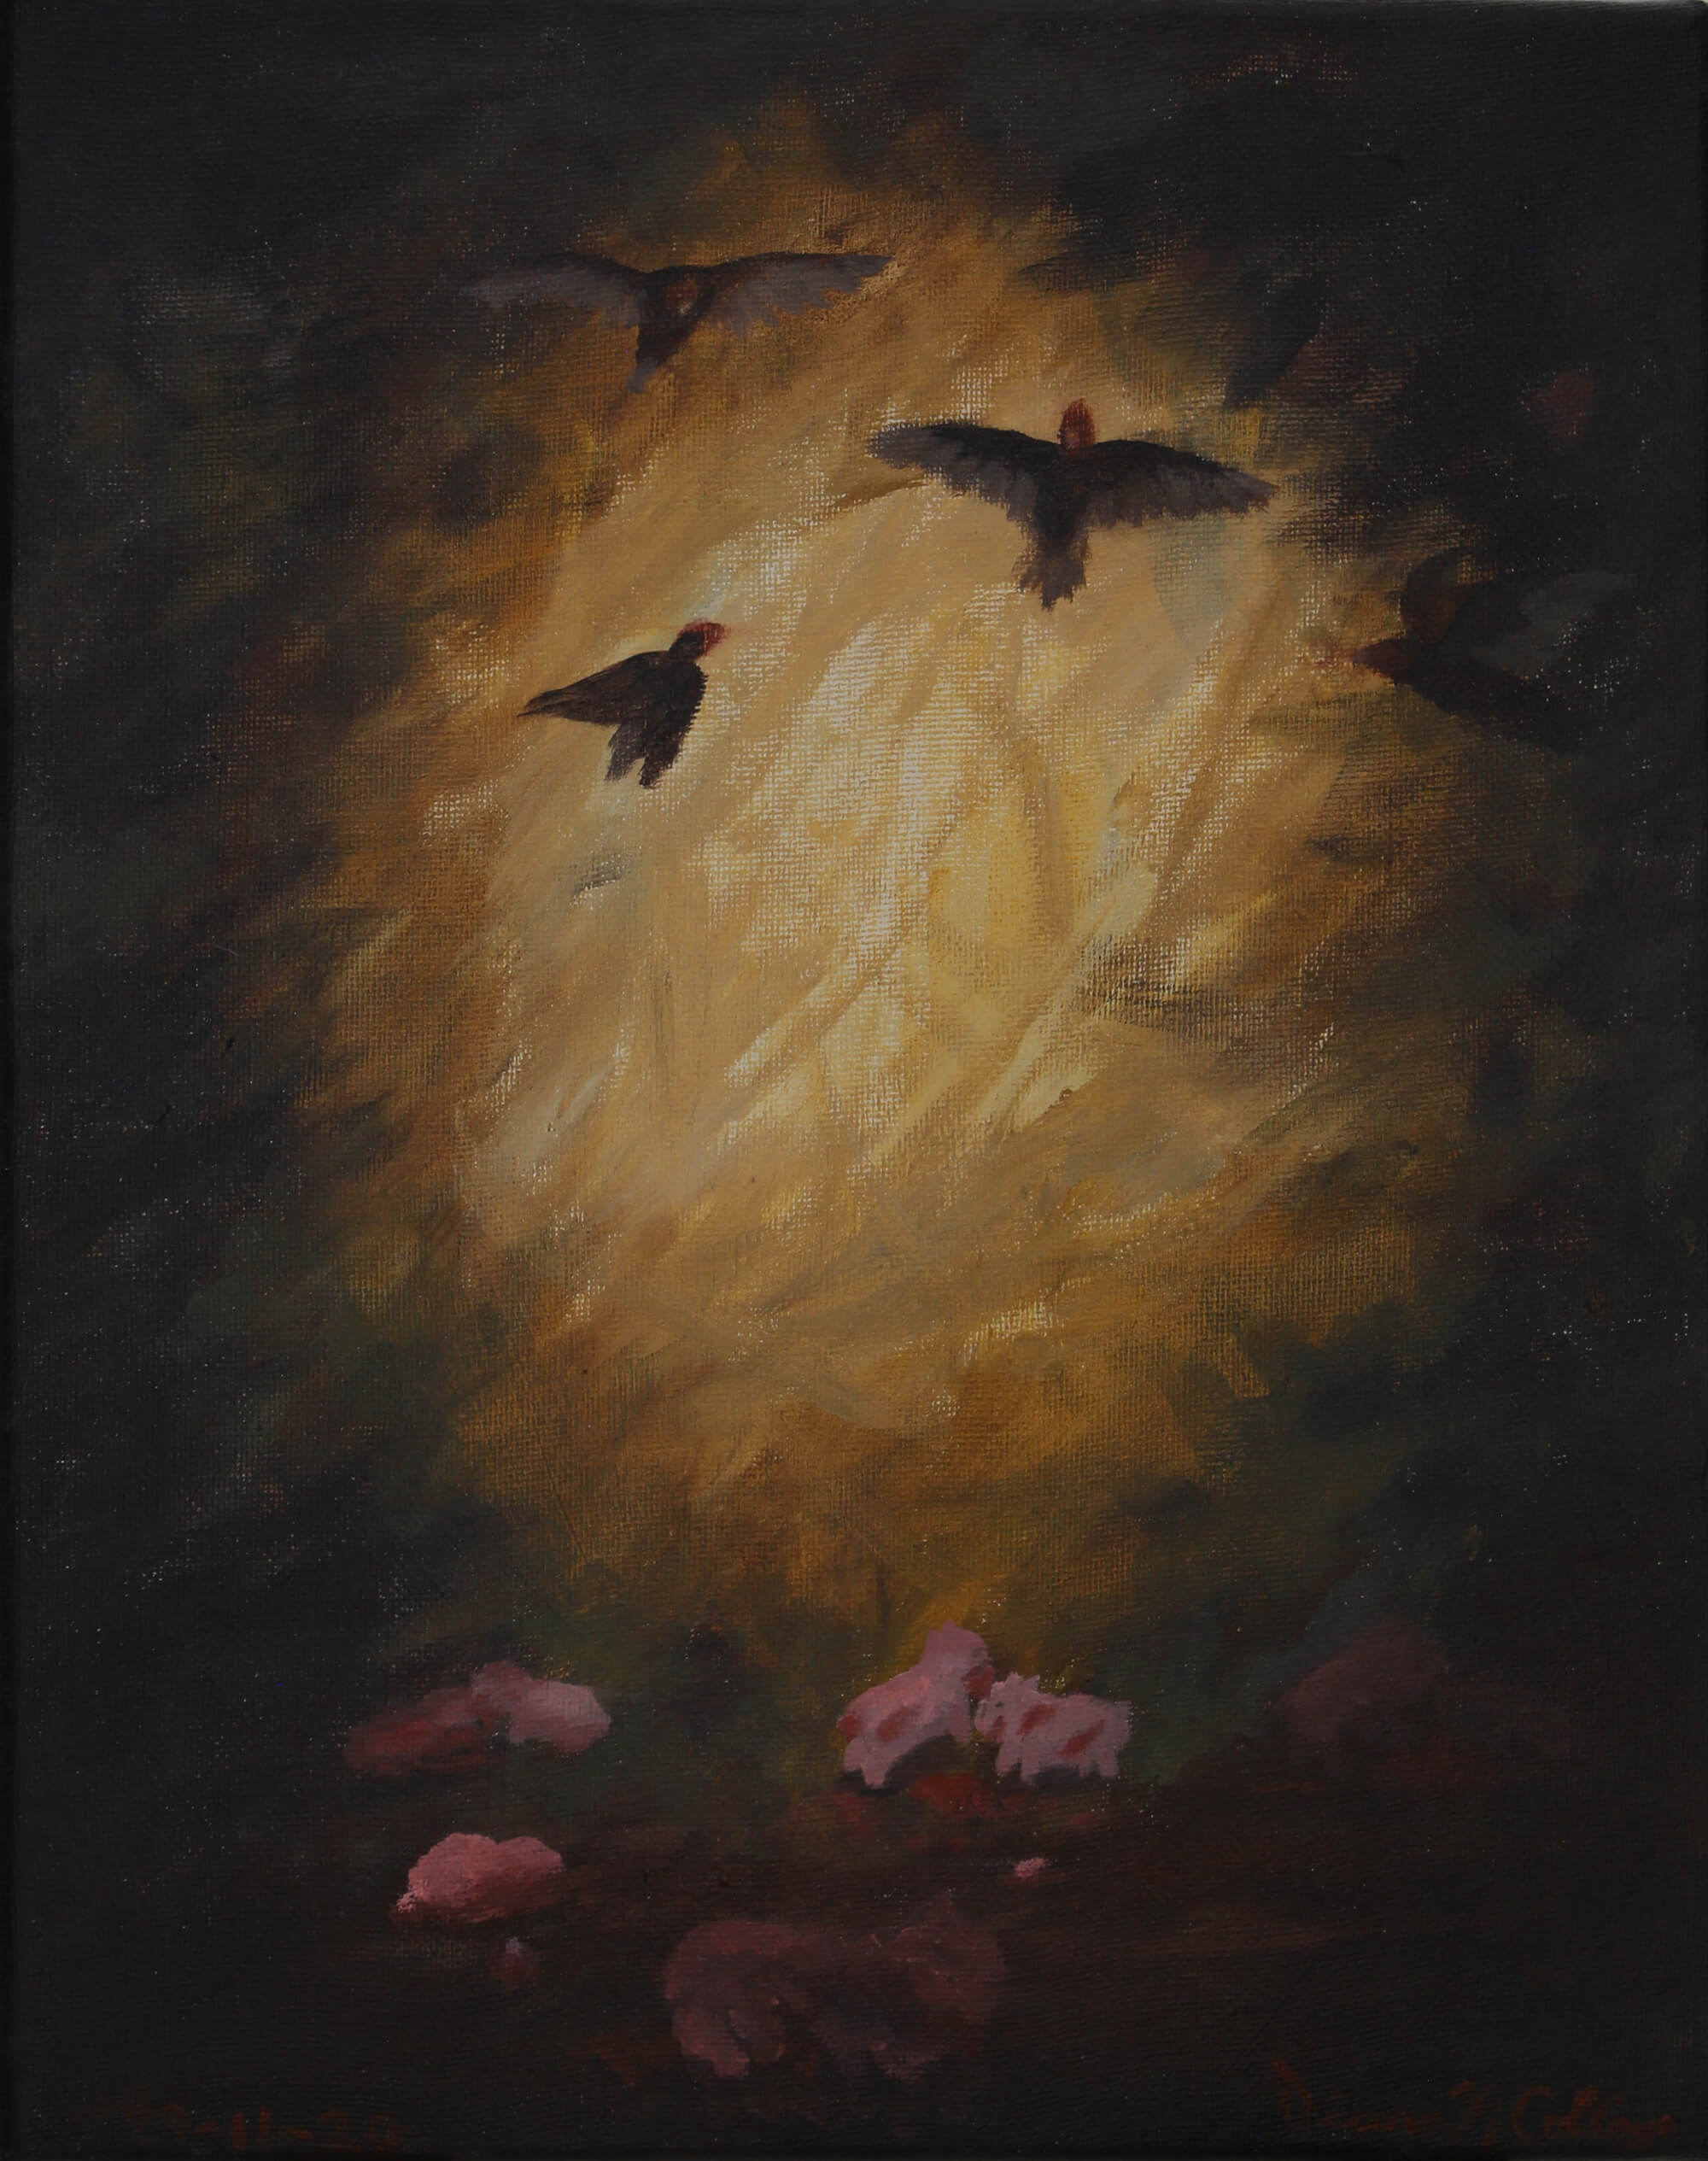 Painting of birds flying at an illuminated entrance of a dark cave where little red animals wander on the bottom representing a vigil by Diana N. Collazo Hernández